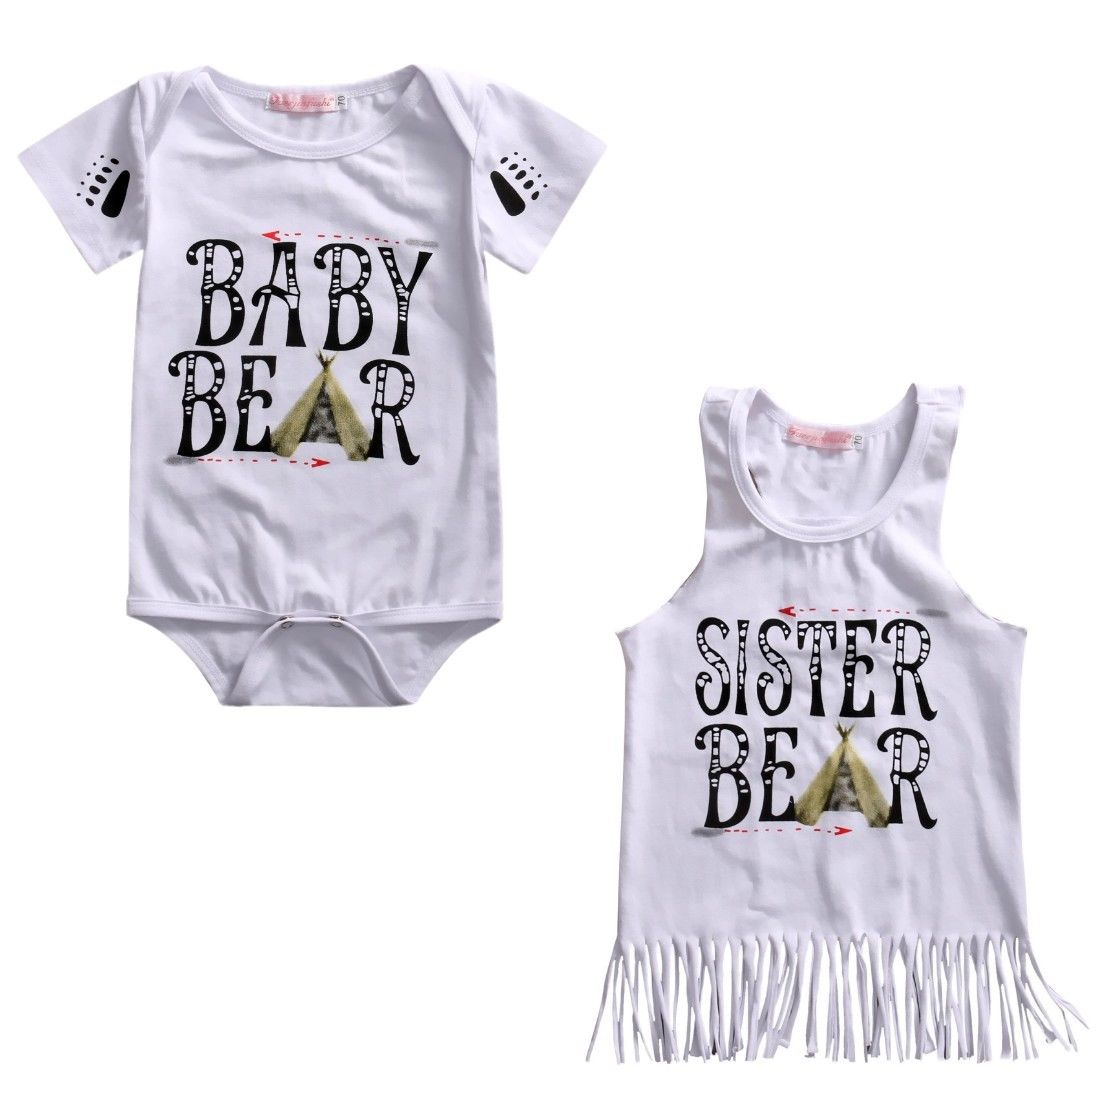 2a5180cf4 Unisex Newborn Clothes Baby Kids Short Sleeve Letter Printed ...